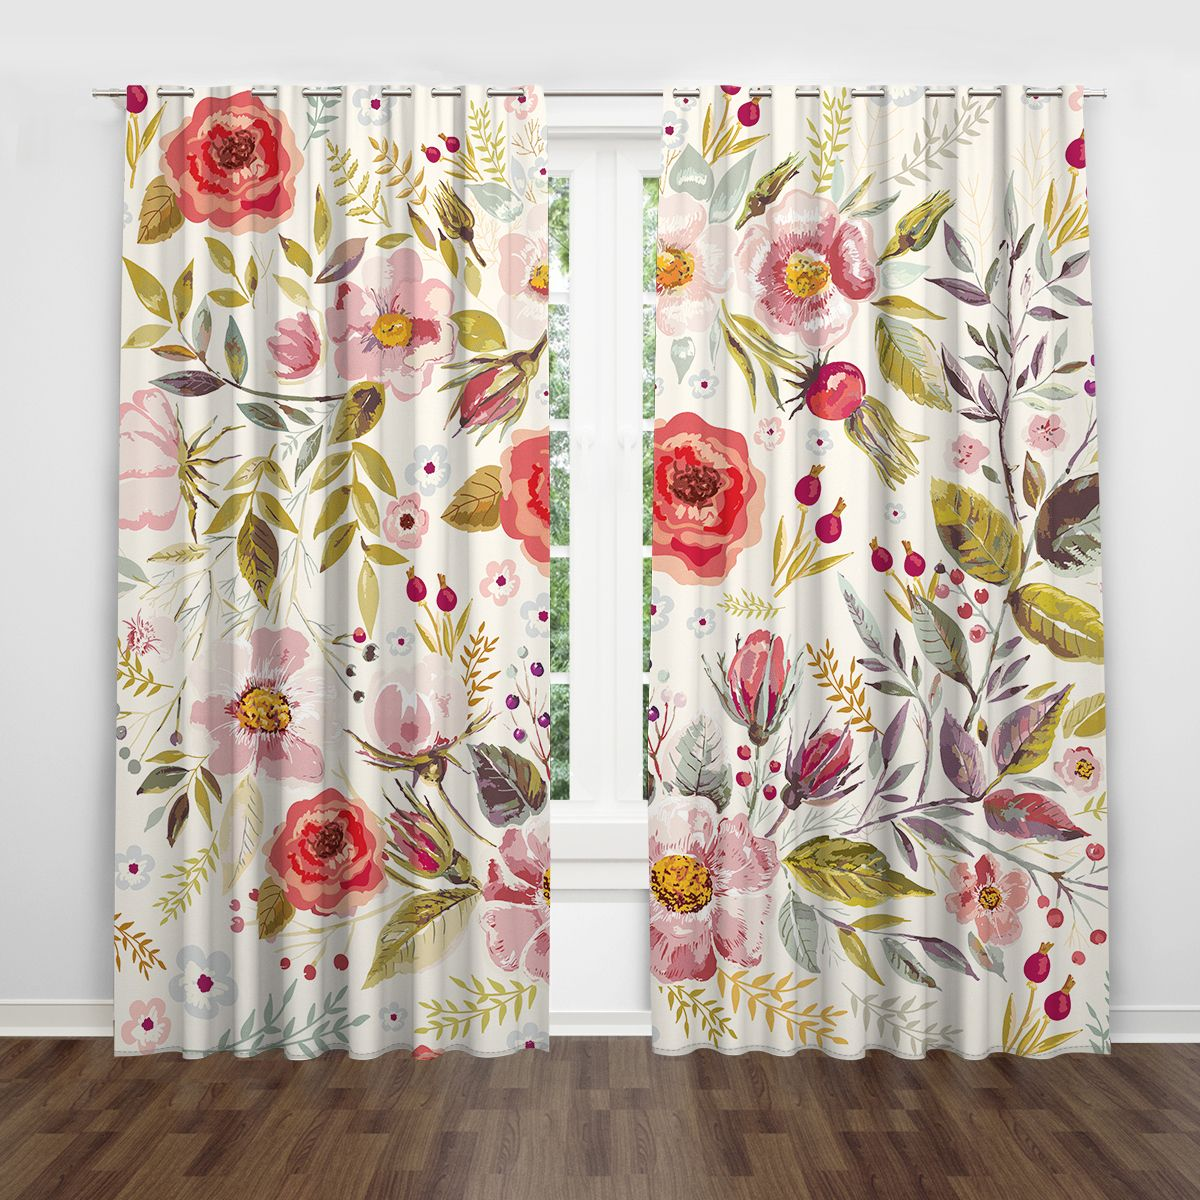 Floral Watercolor Leaf Pink Red Flower Botanical Window Curtain